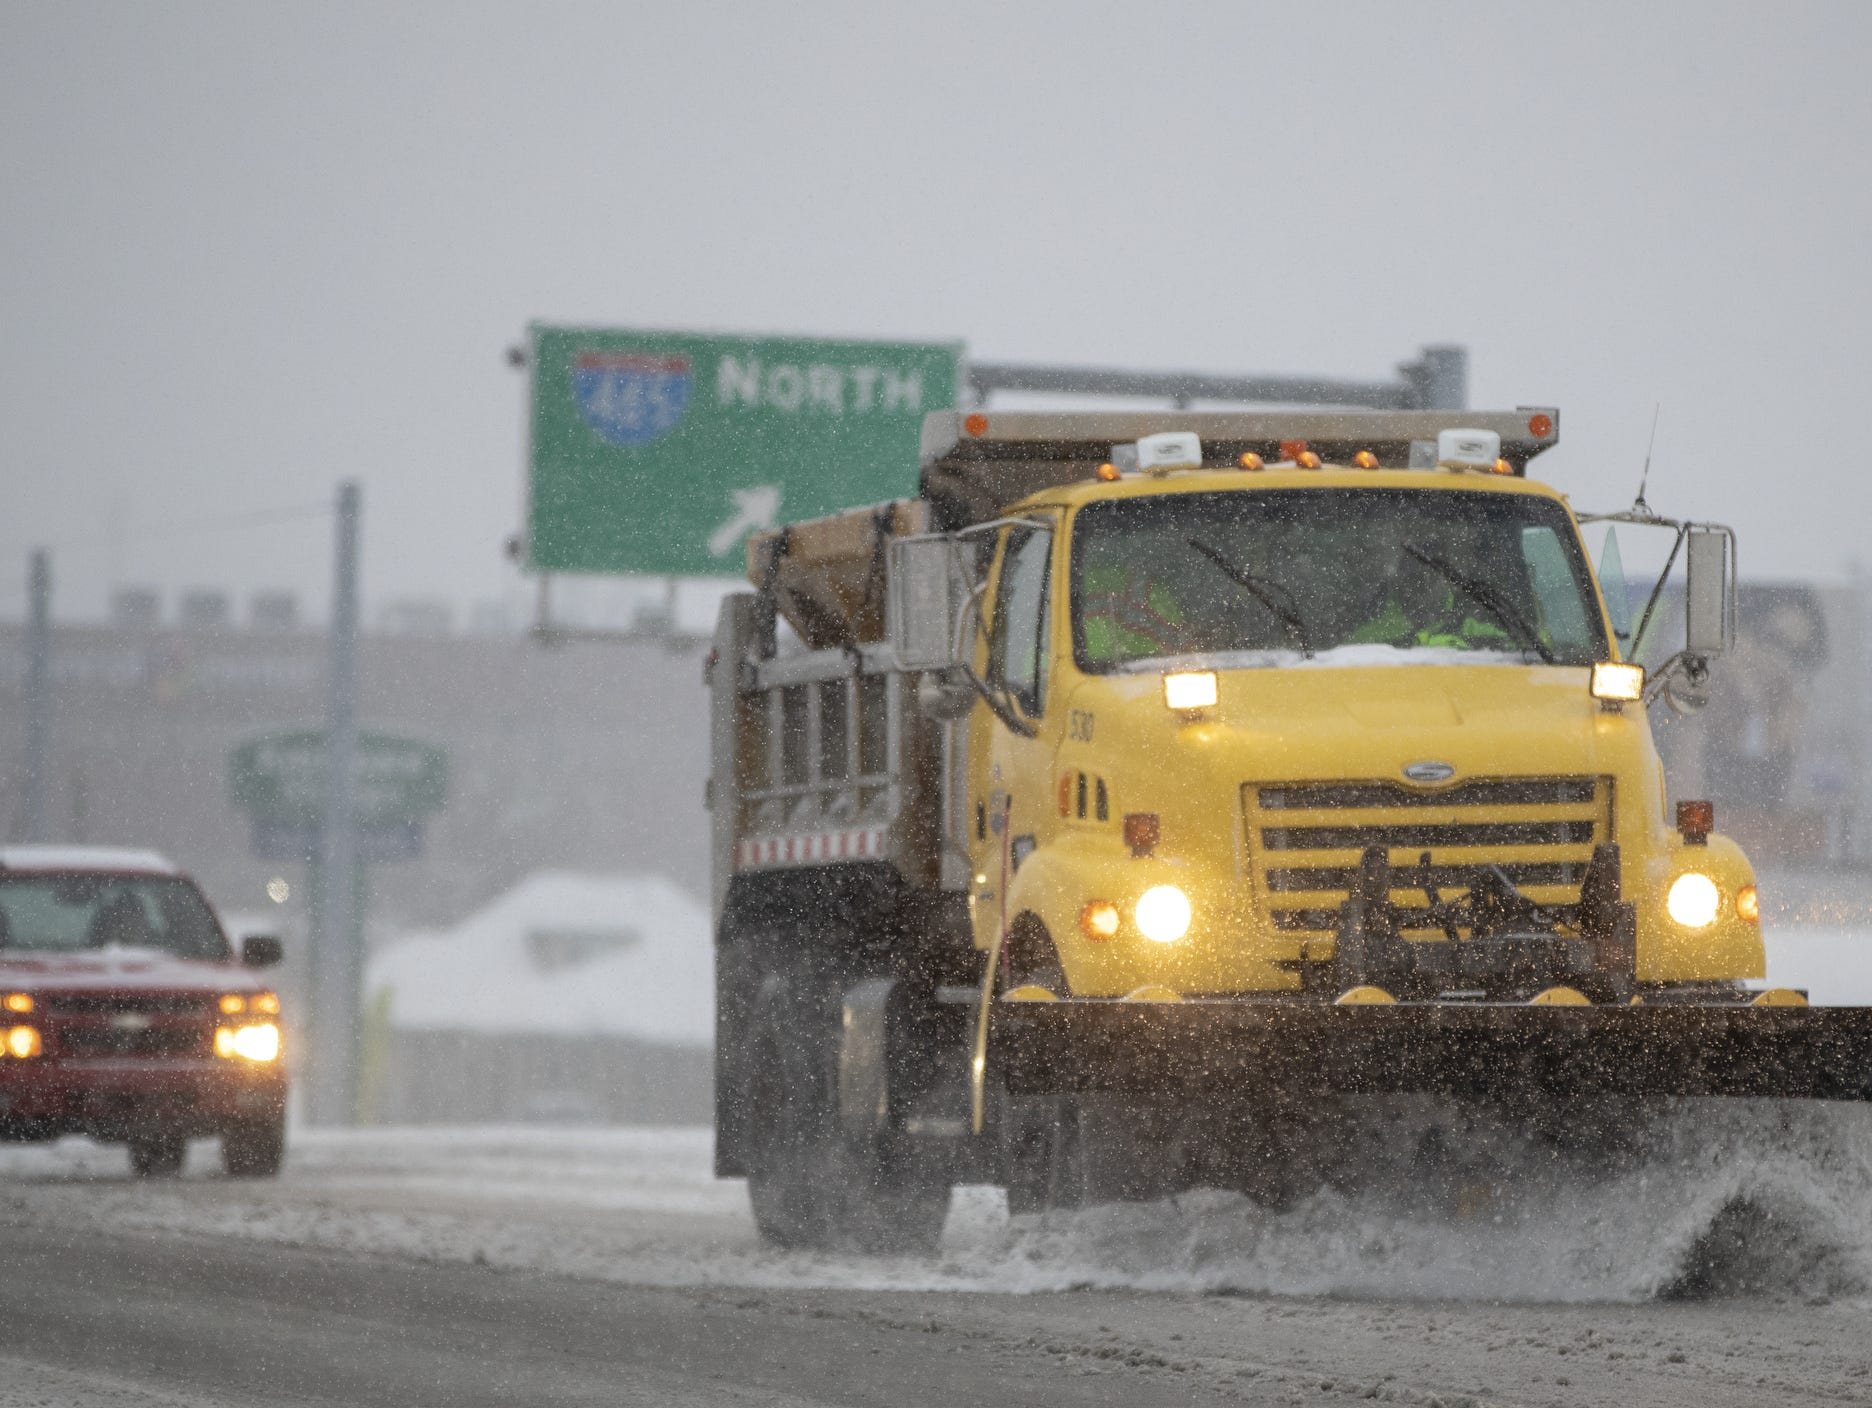 A snow plow works on 56th street, where it crosses 465 on the city's east side, on a day where 5-7 inches of snow is expected to fall in Central Indiana, Indianapolis, Saturday, Jan. 12, 2019.